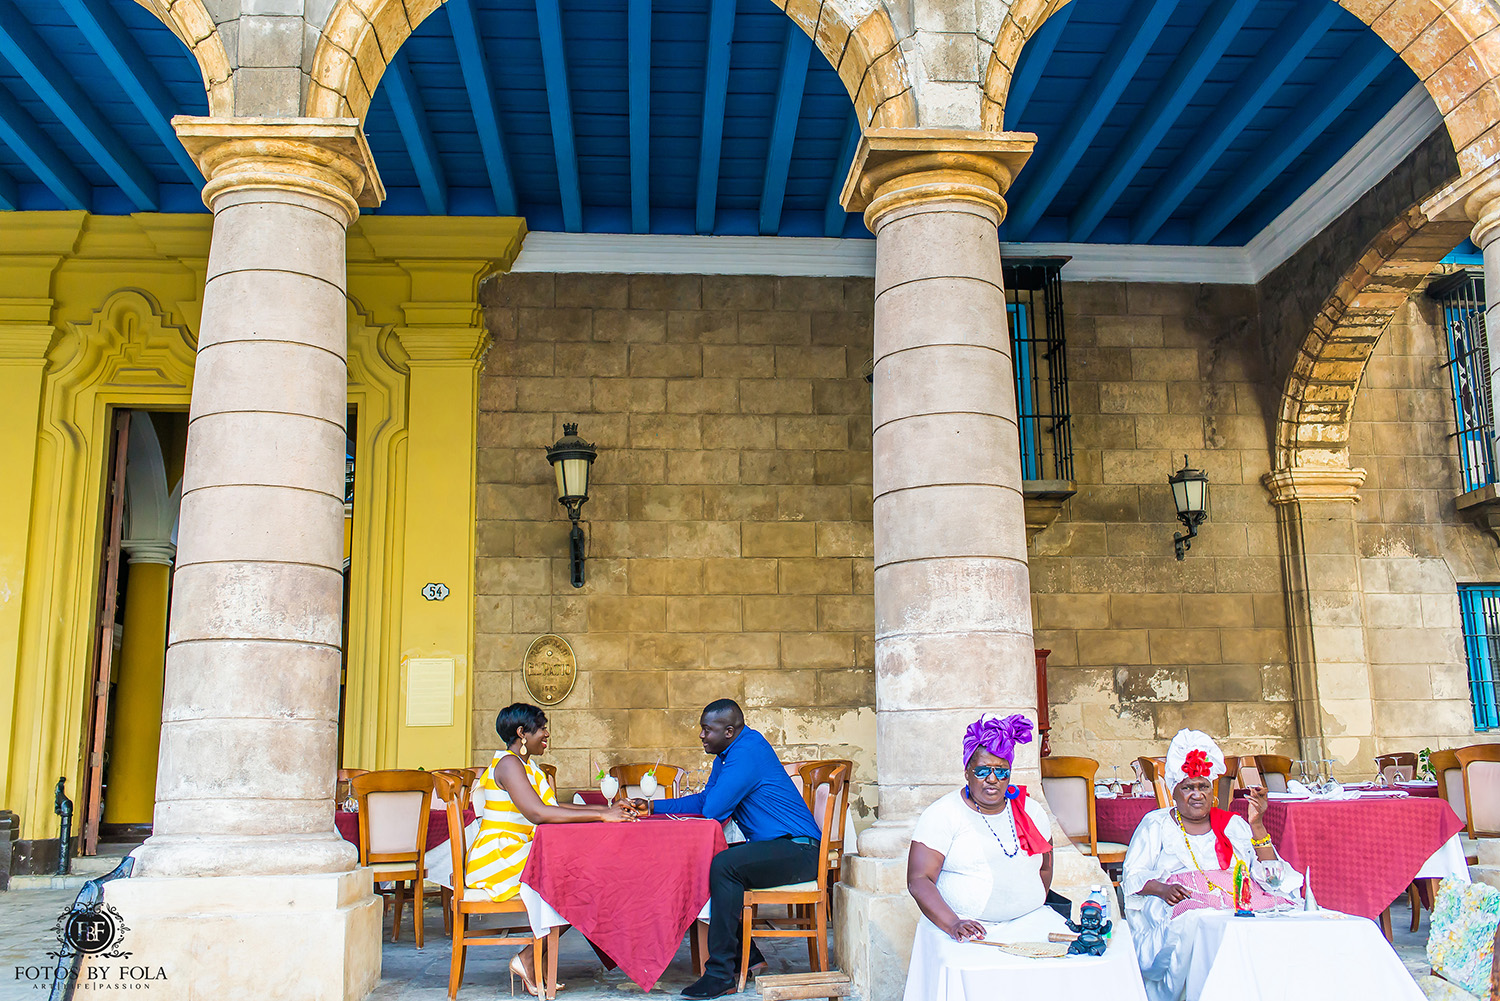 Fotos by Fola | Atlanta Wedding Photographer | Destination Wedding Photographer | Havana Cuba Engagement Shoot | La Guarida | Havana Cathedral | Santa María | Ciudad De La Habana | Cuba | Old Havana